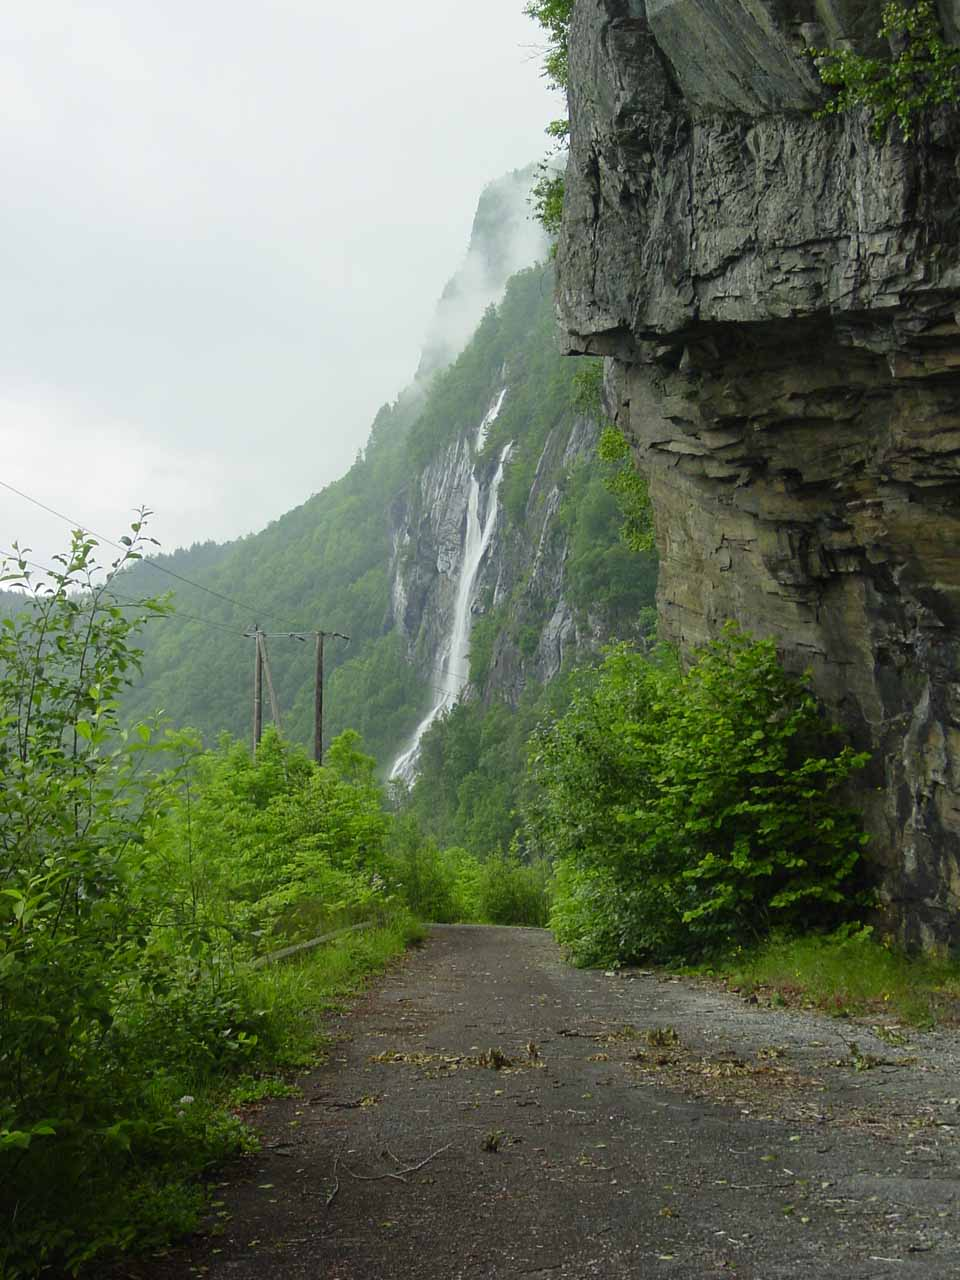 On the other side of the tunnel, we found a small pullout and we then walked the bypass back towards Hongavikfossen